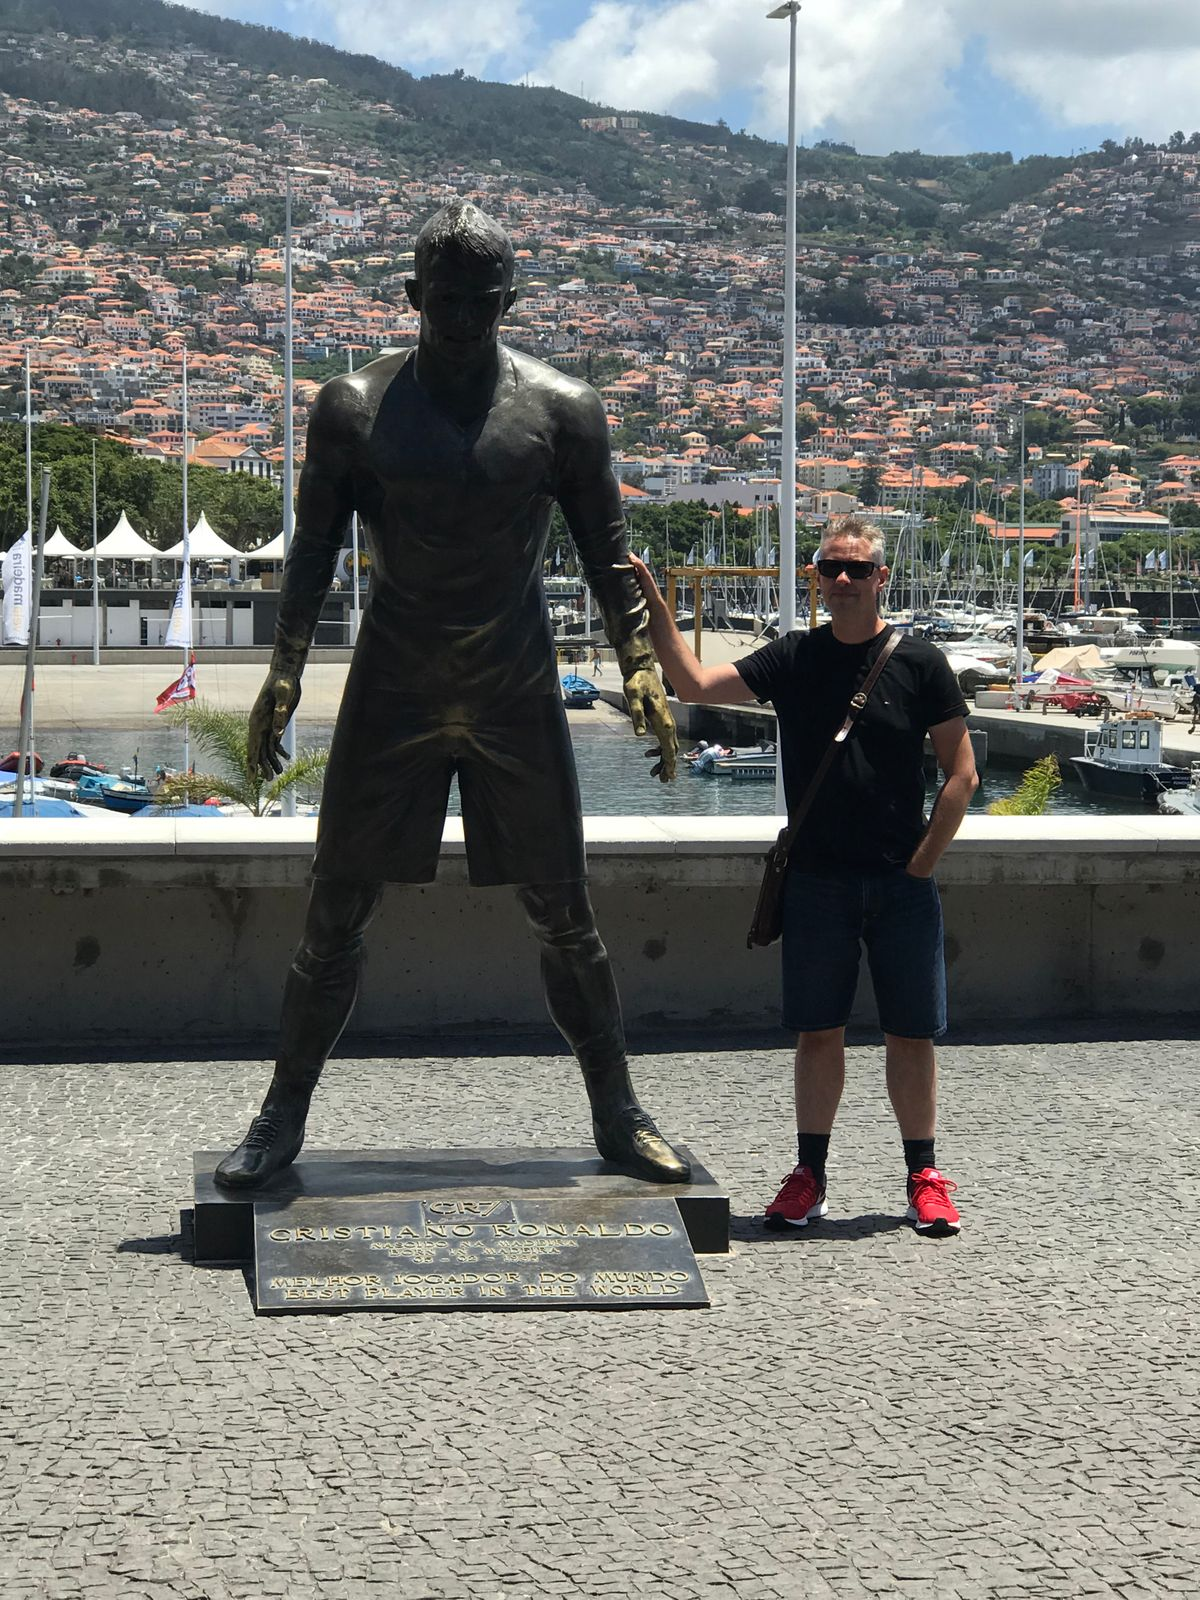 funchal - am CR 7 museum